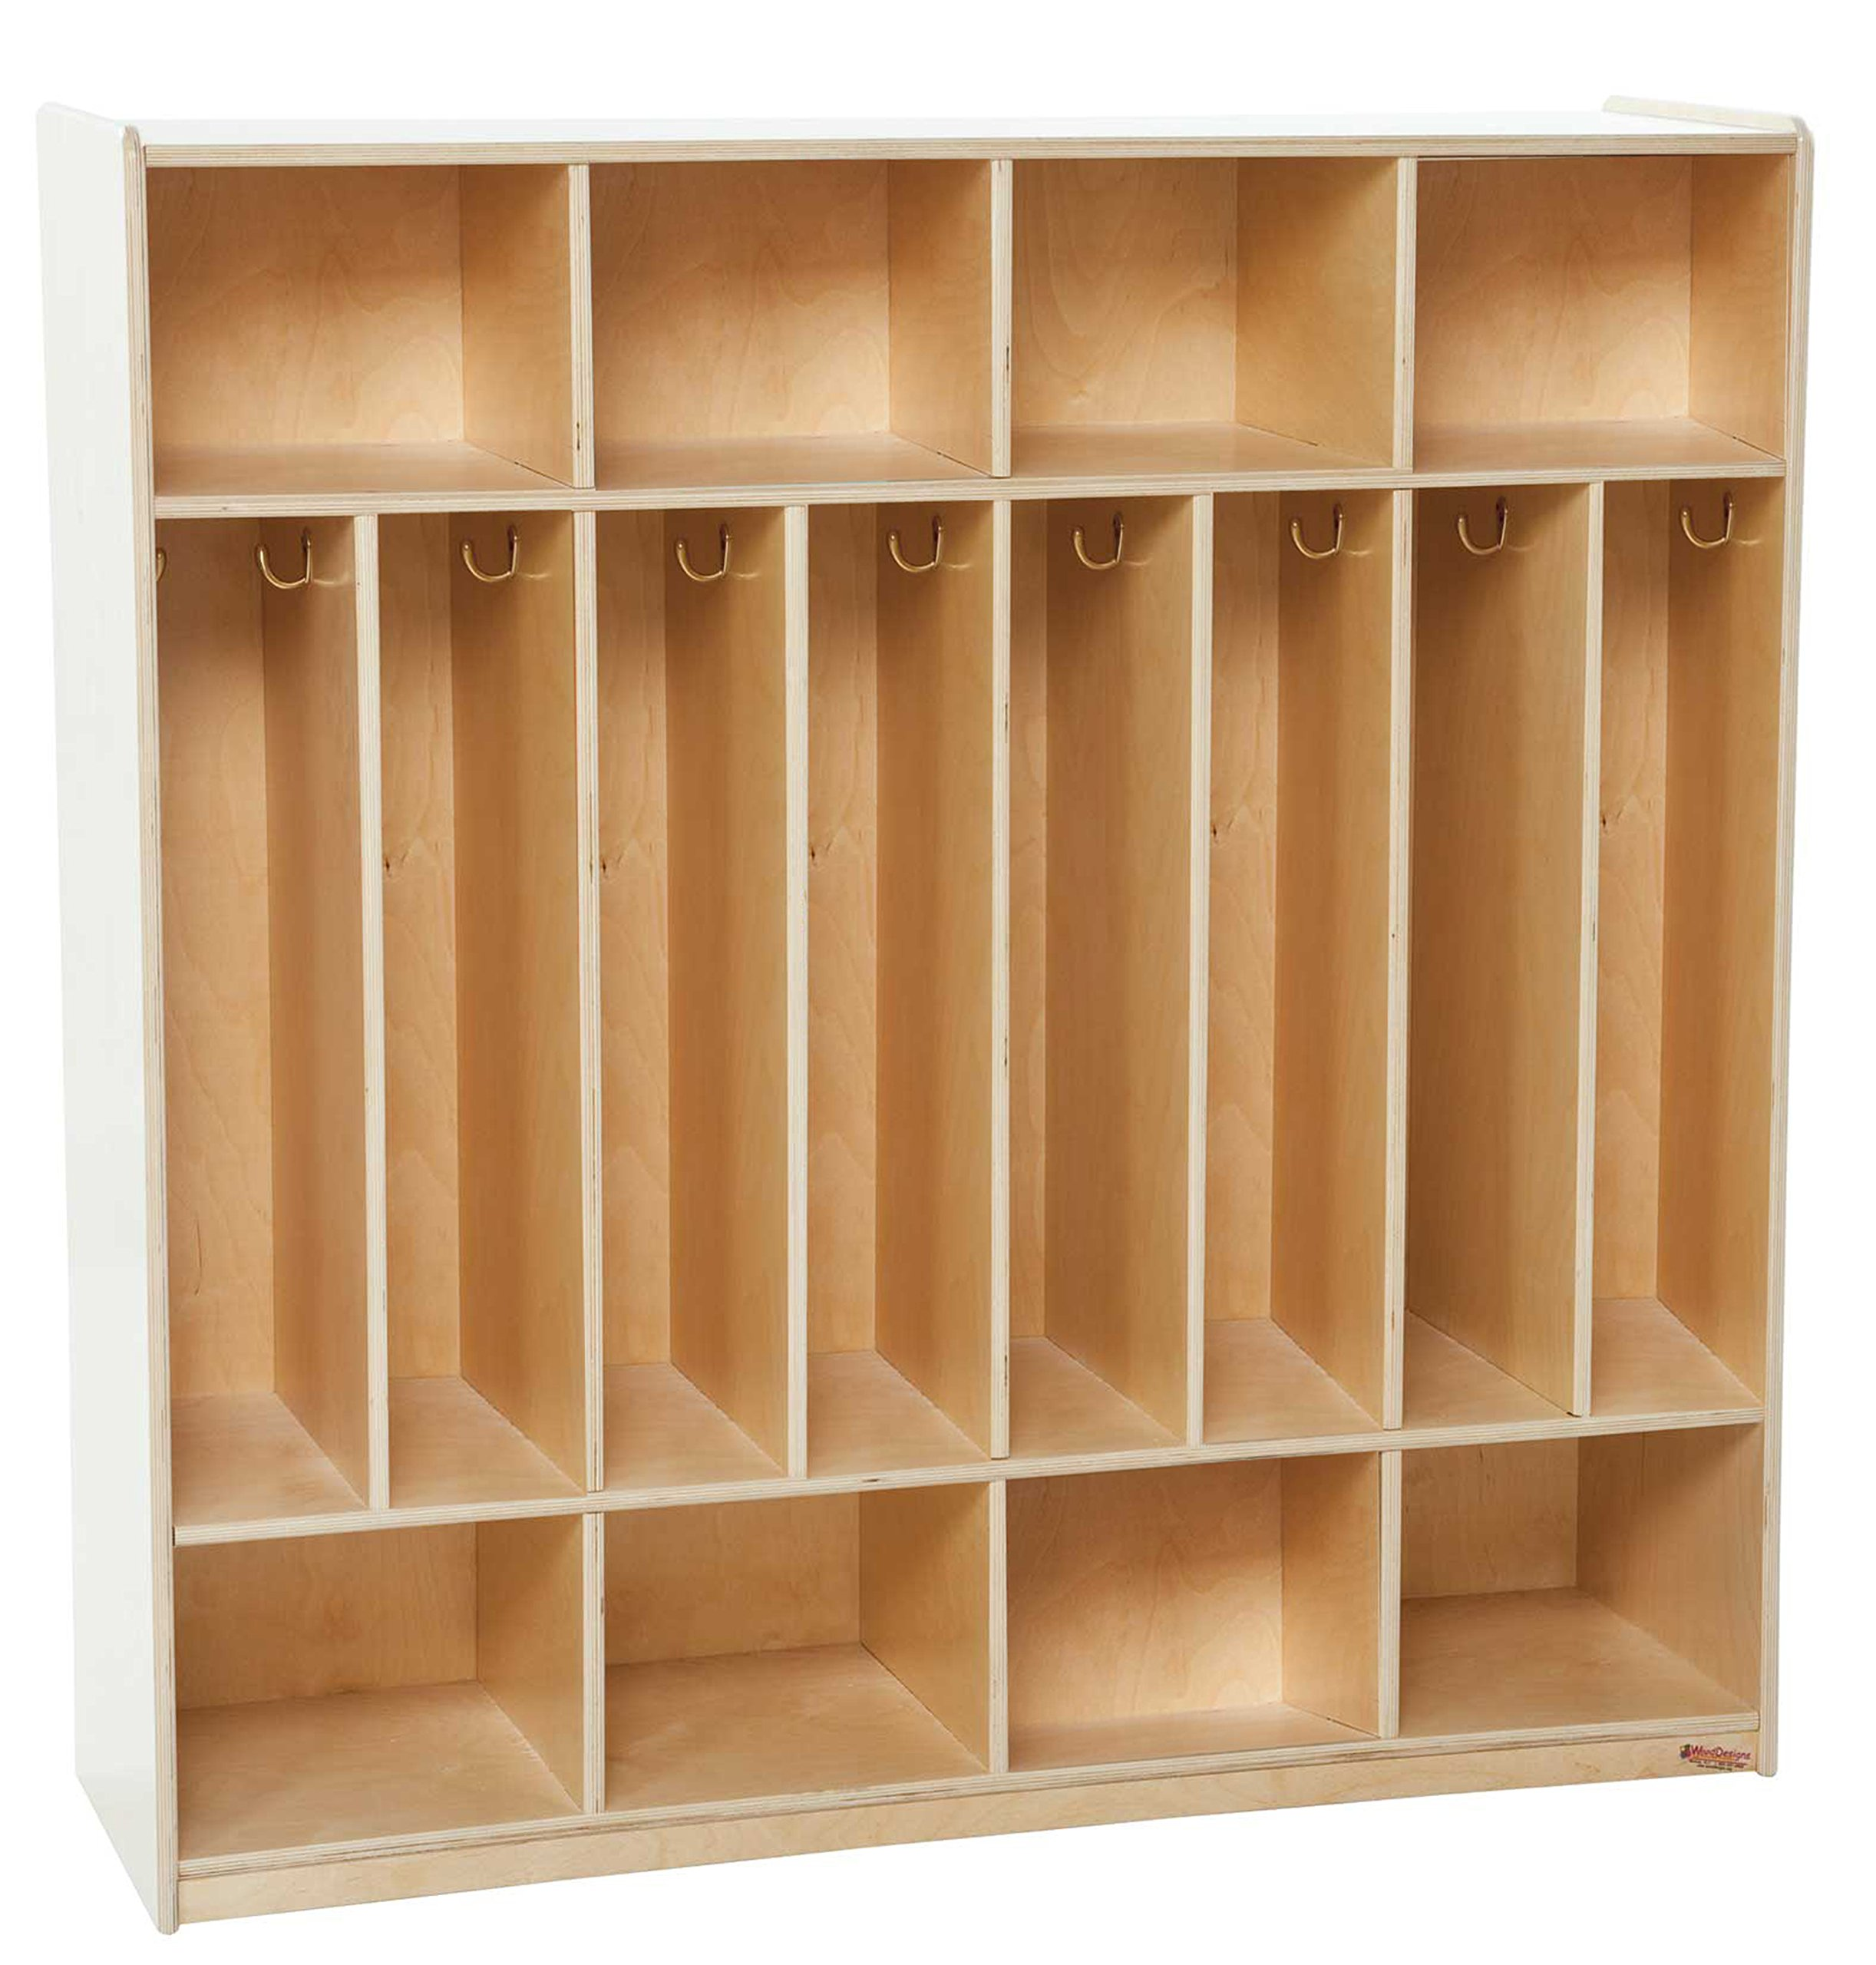 Wood Designs 51208 8 Section Space-Saver Locker, 49'' Height, 18'' Width, 51'' Length